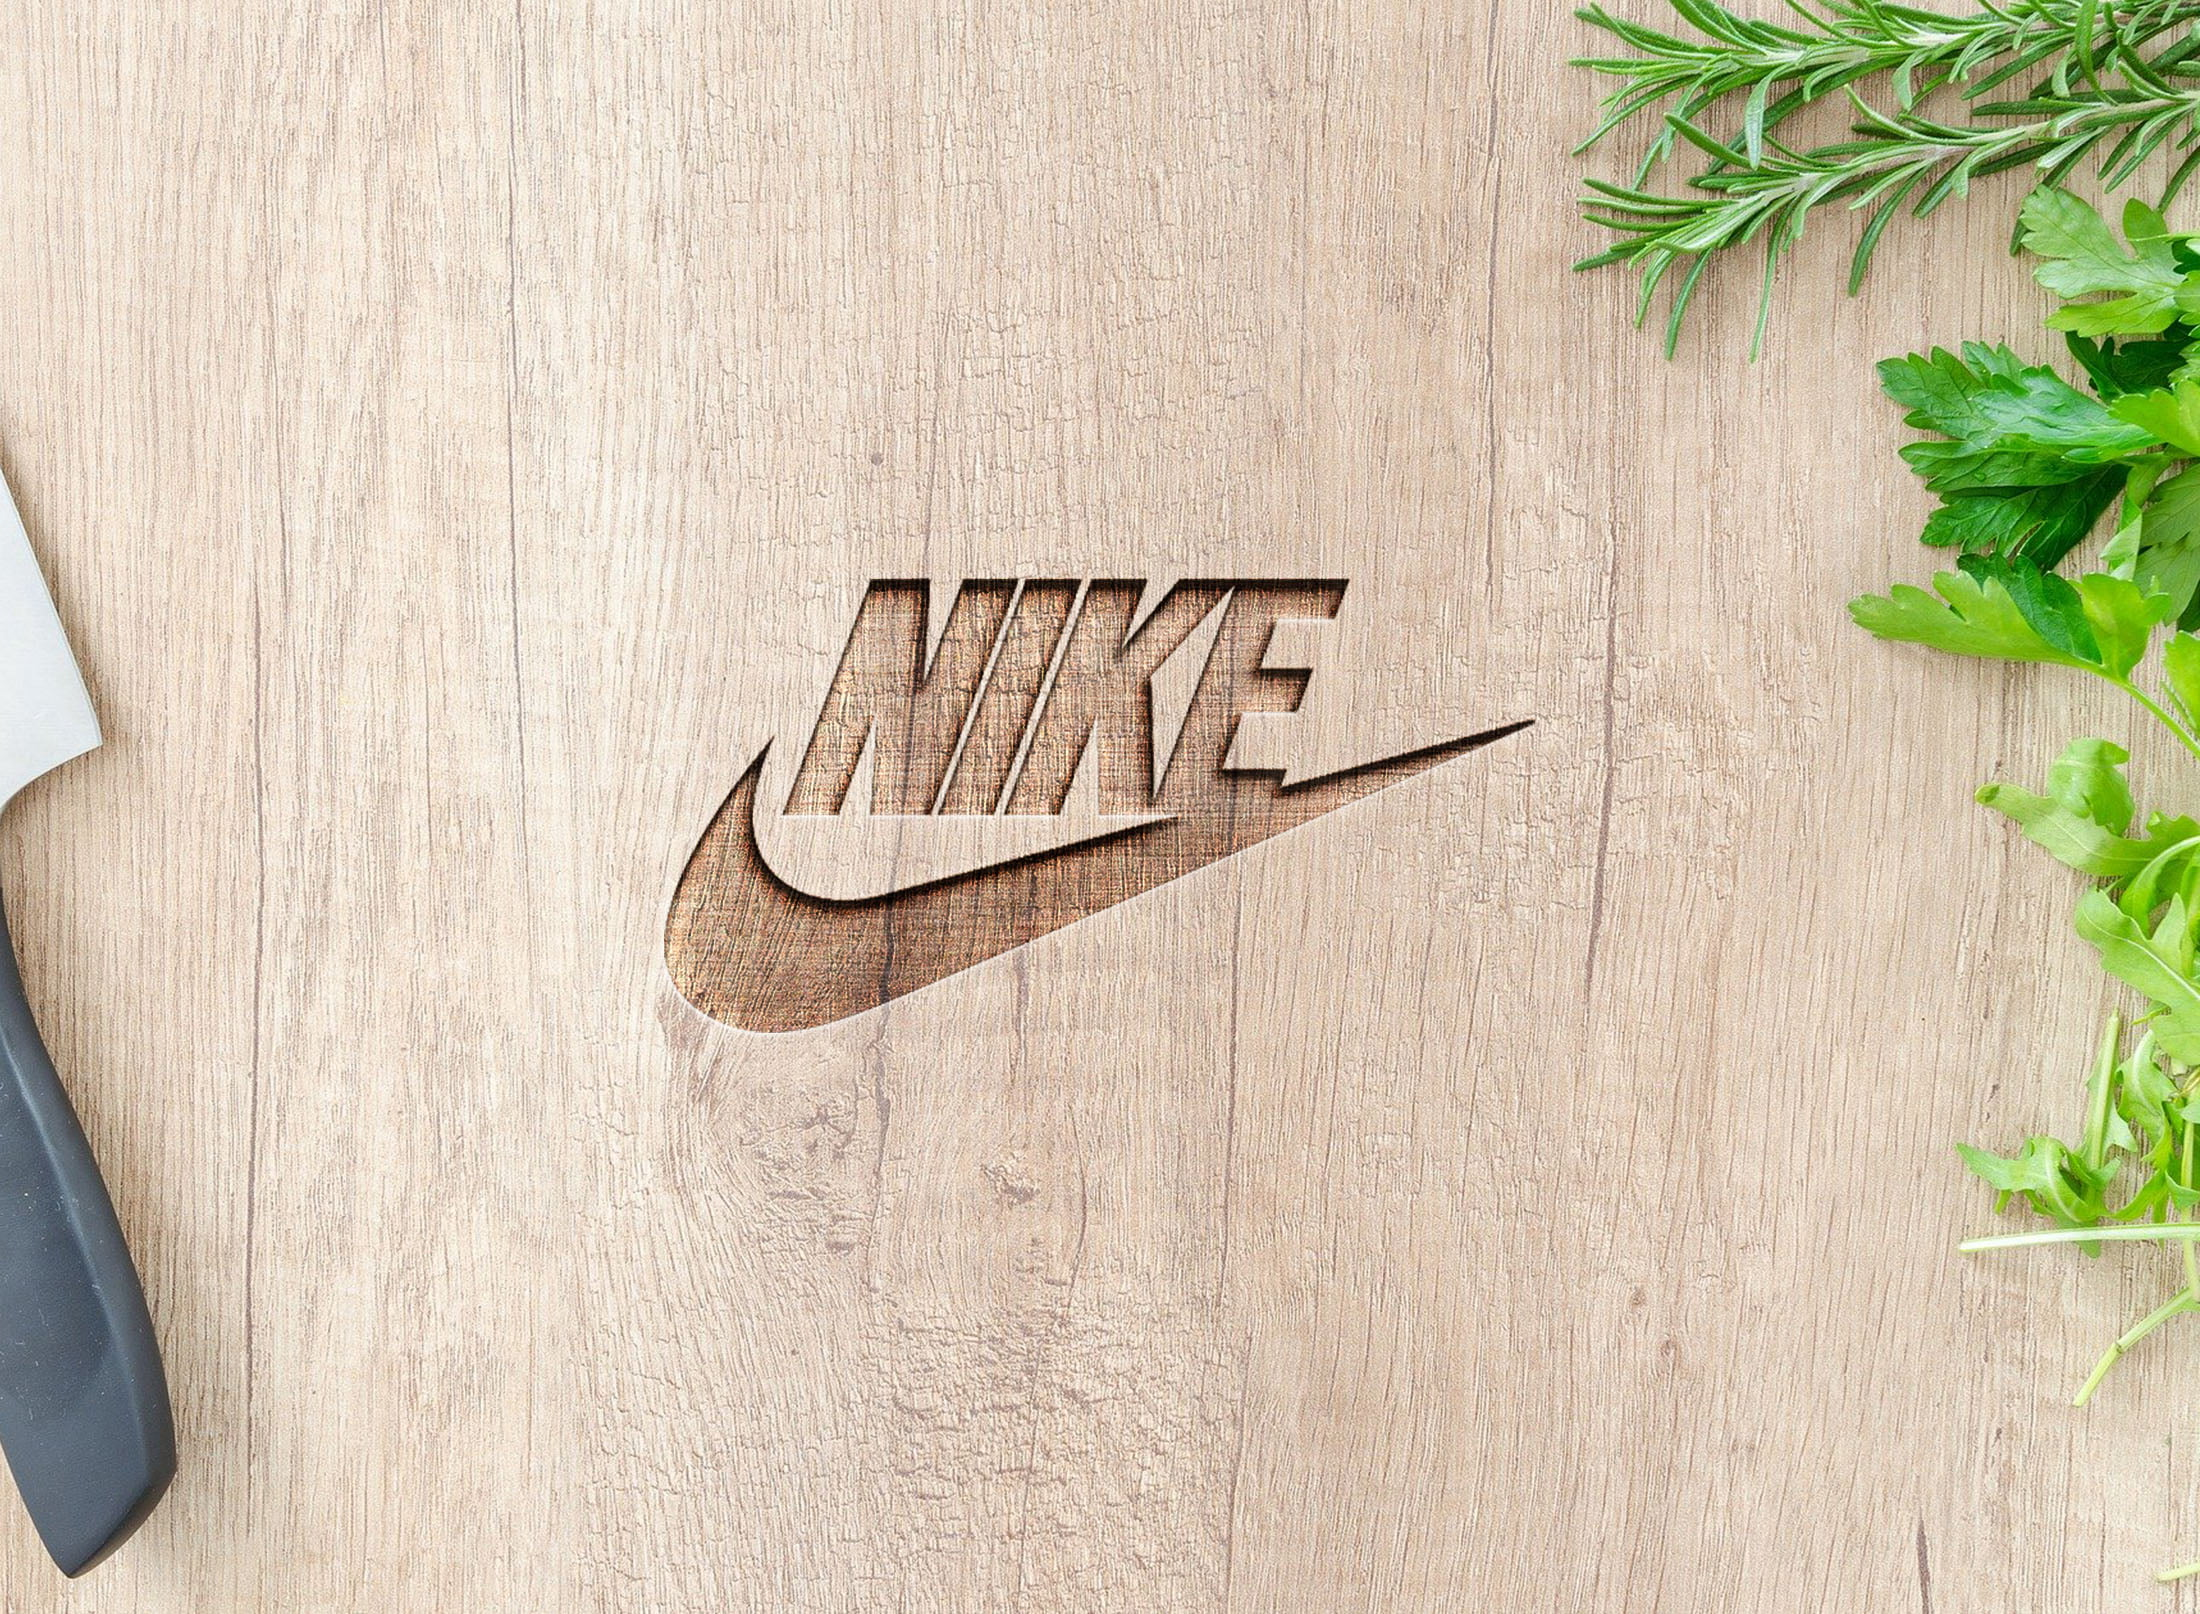 Nike on curved wood mockup